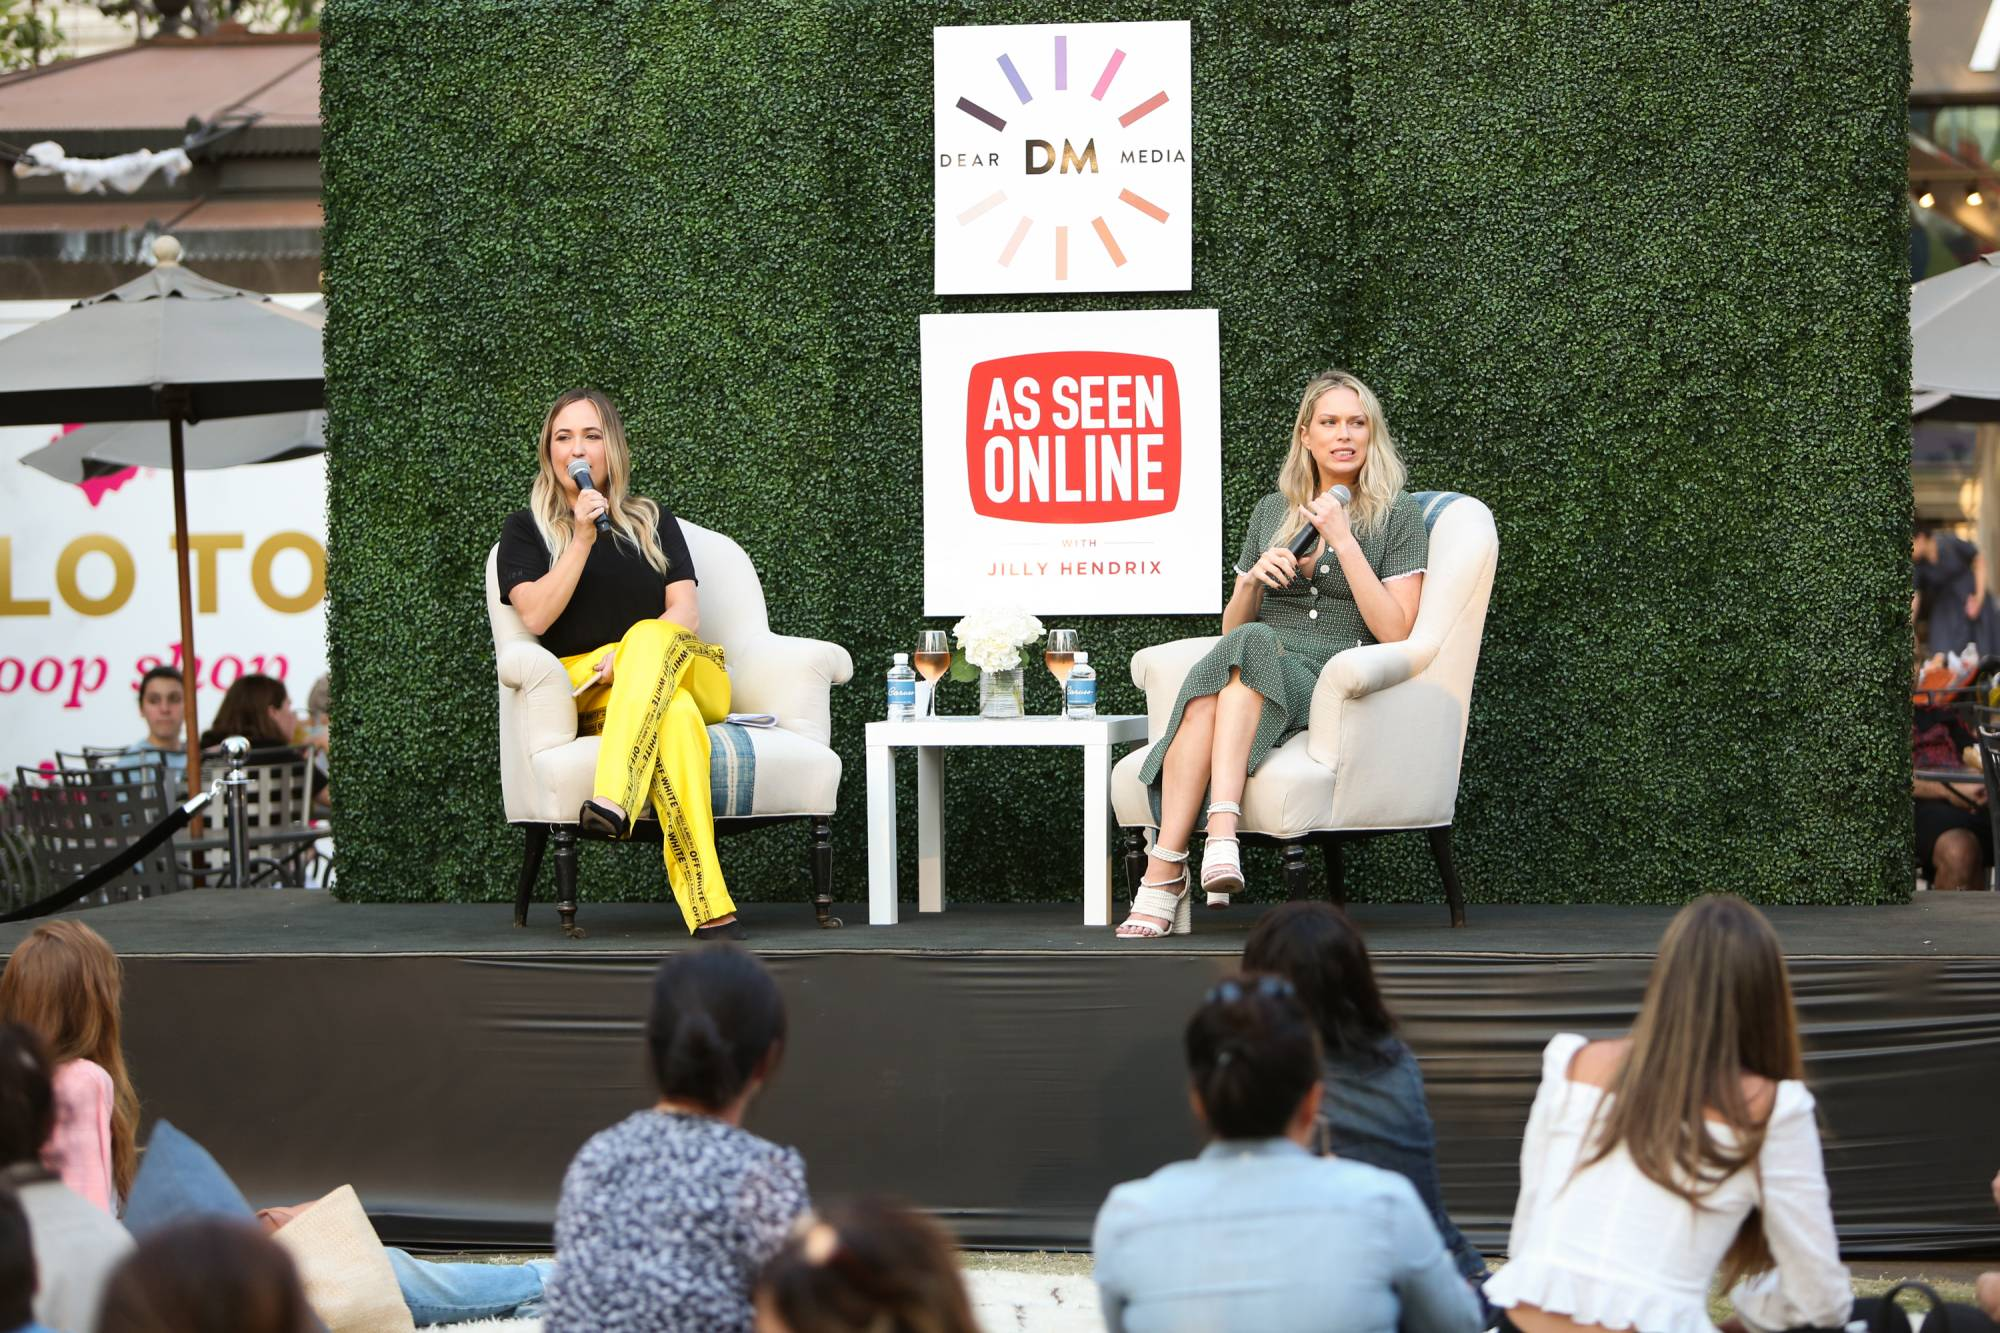 Dear Media Podcast At The Grove Presents As Seen Online With Jilly Hendrix